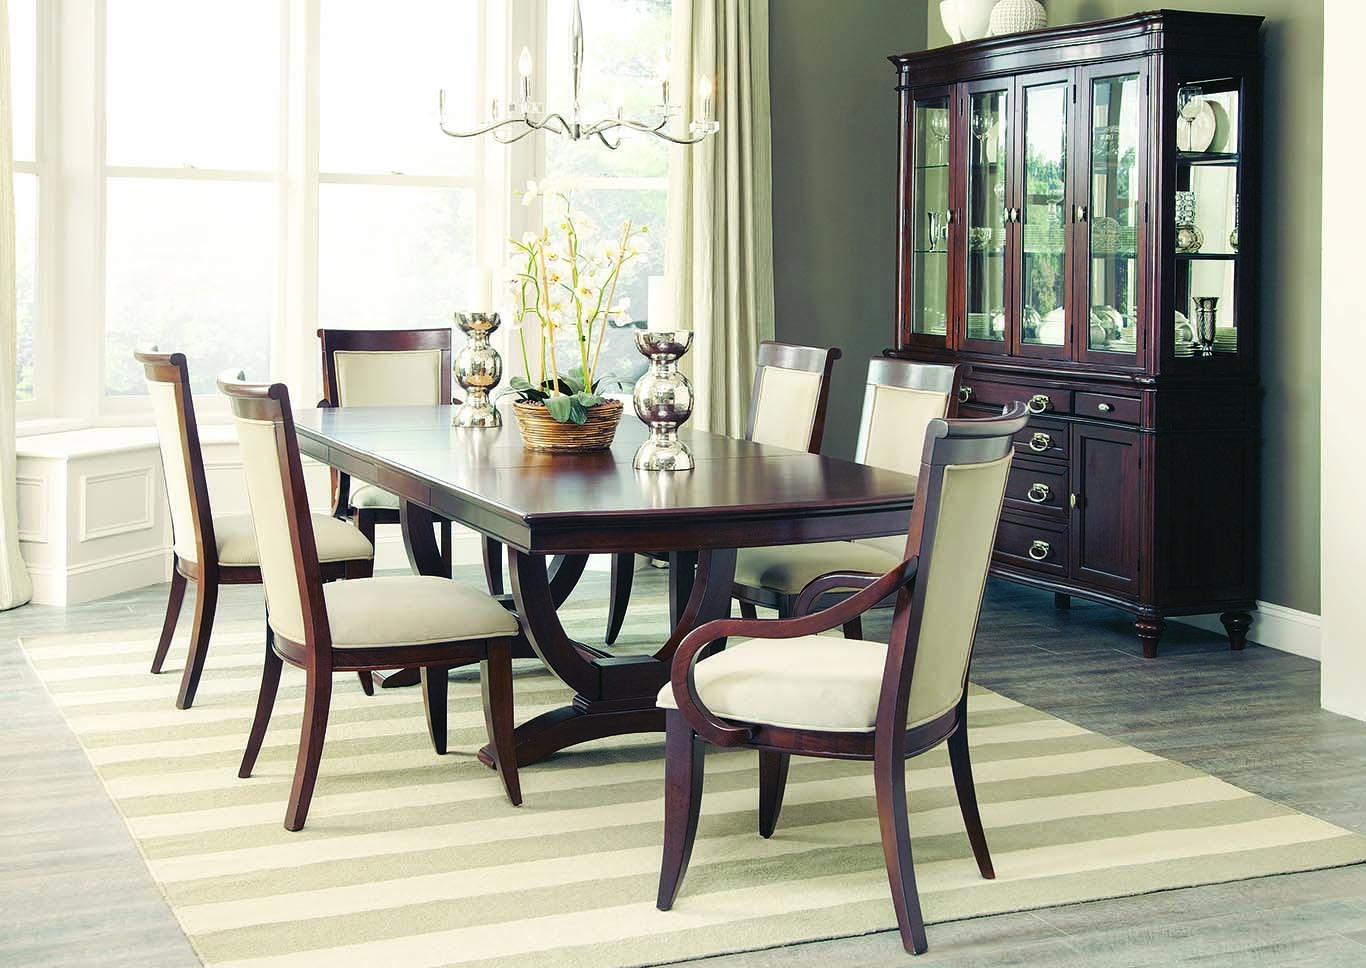 Furniture Expo – Baton Rouge, La Walnut Rectangular Extension Dining In Jaxon 5 Piece Extension Round Dining Sets With Wood Chairs (View 22 of 25)